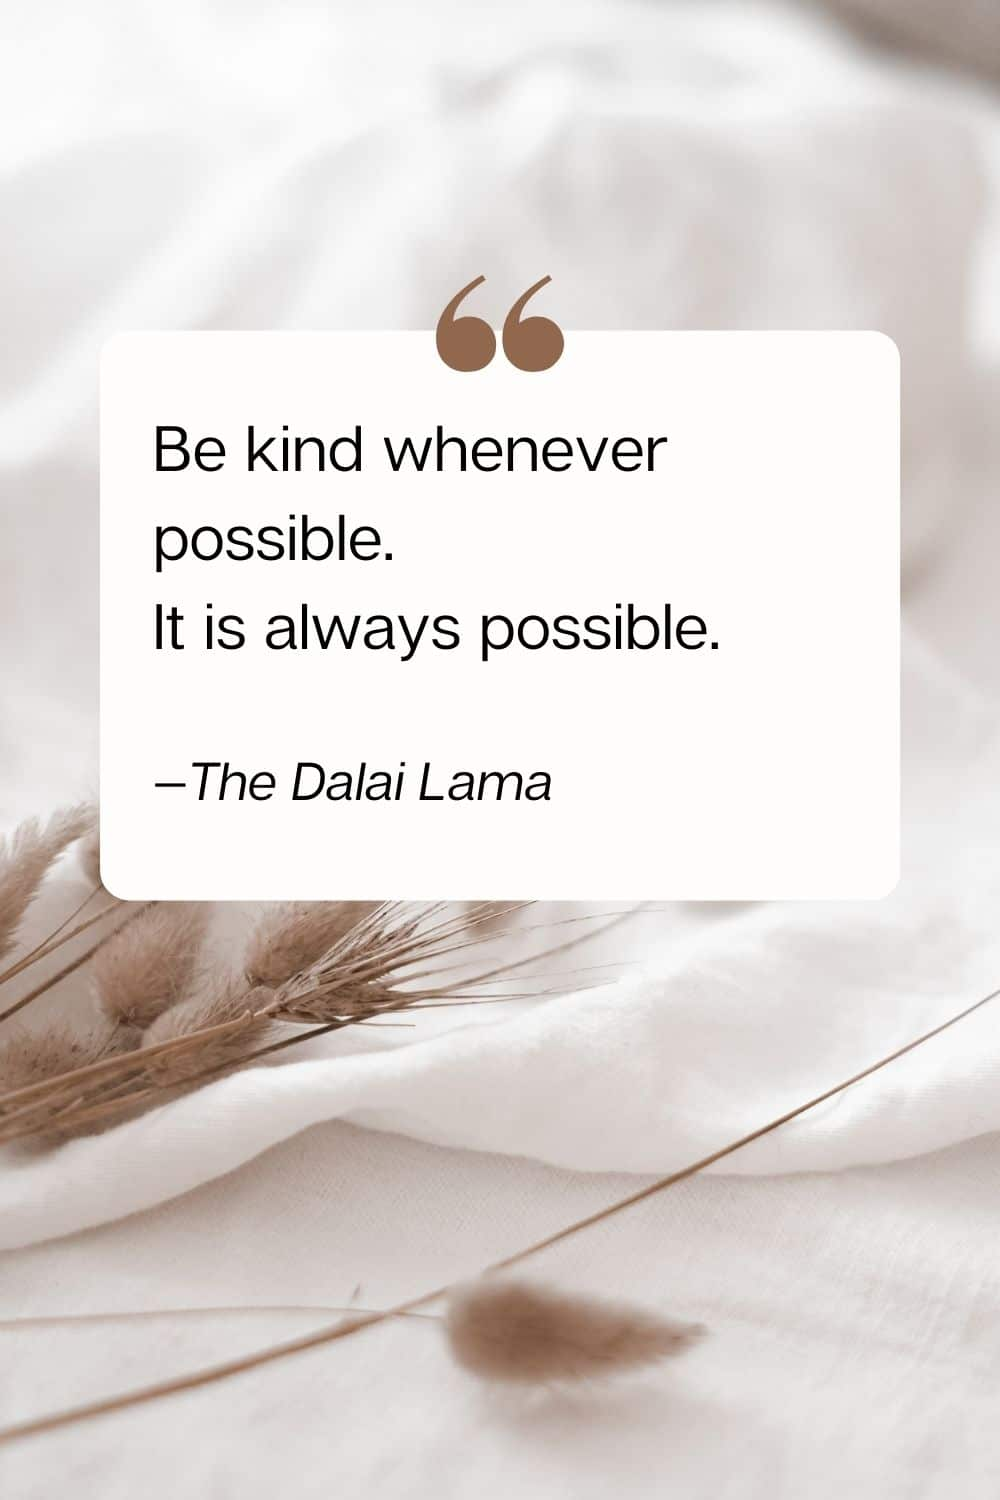 quote - Be kind whenever possible. It is always possible. —The Dalai Lama